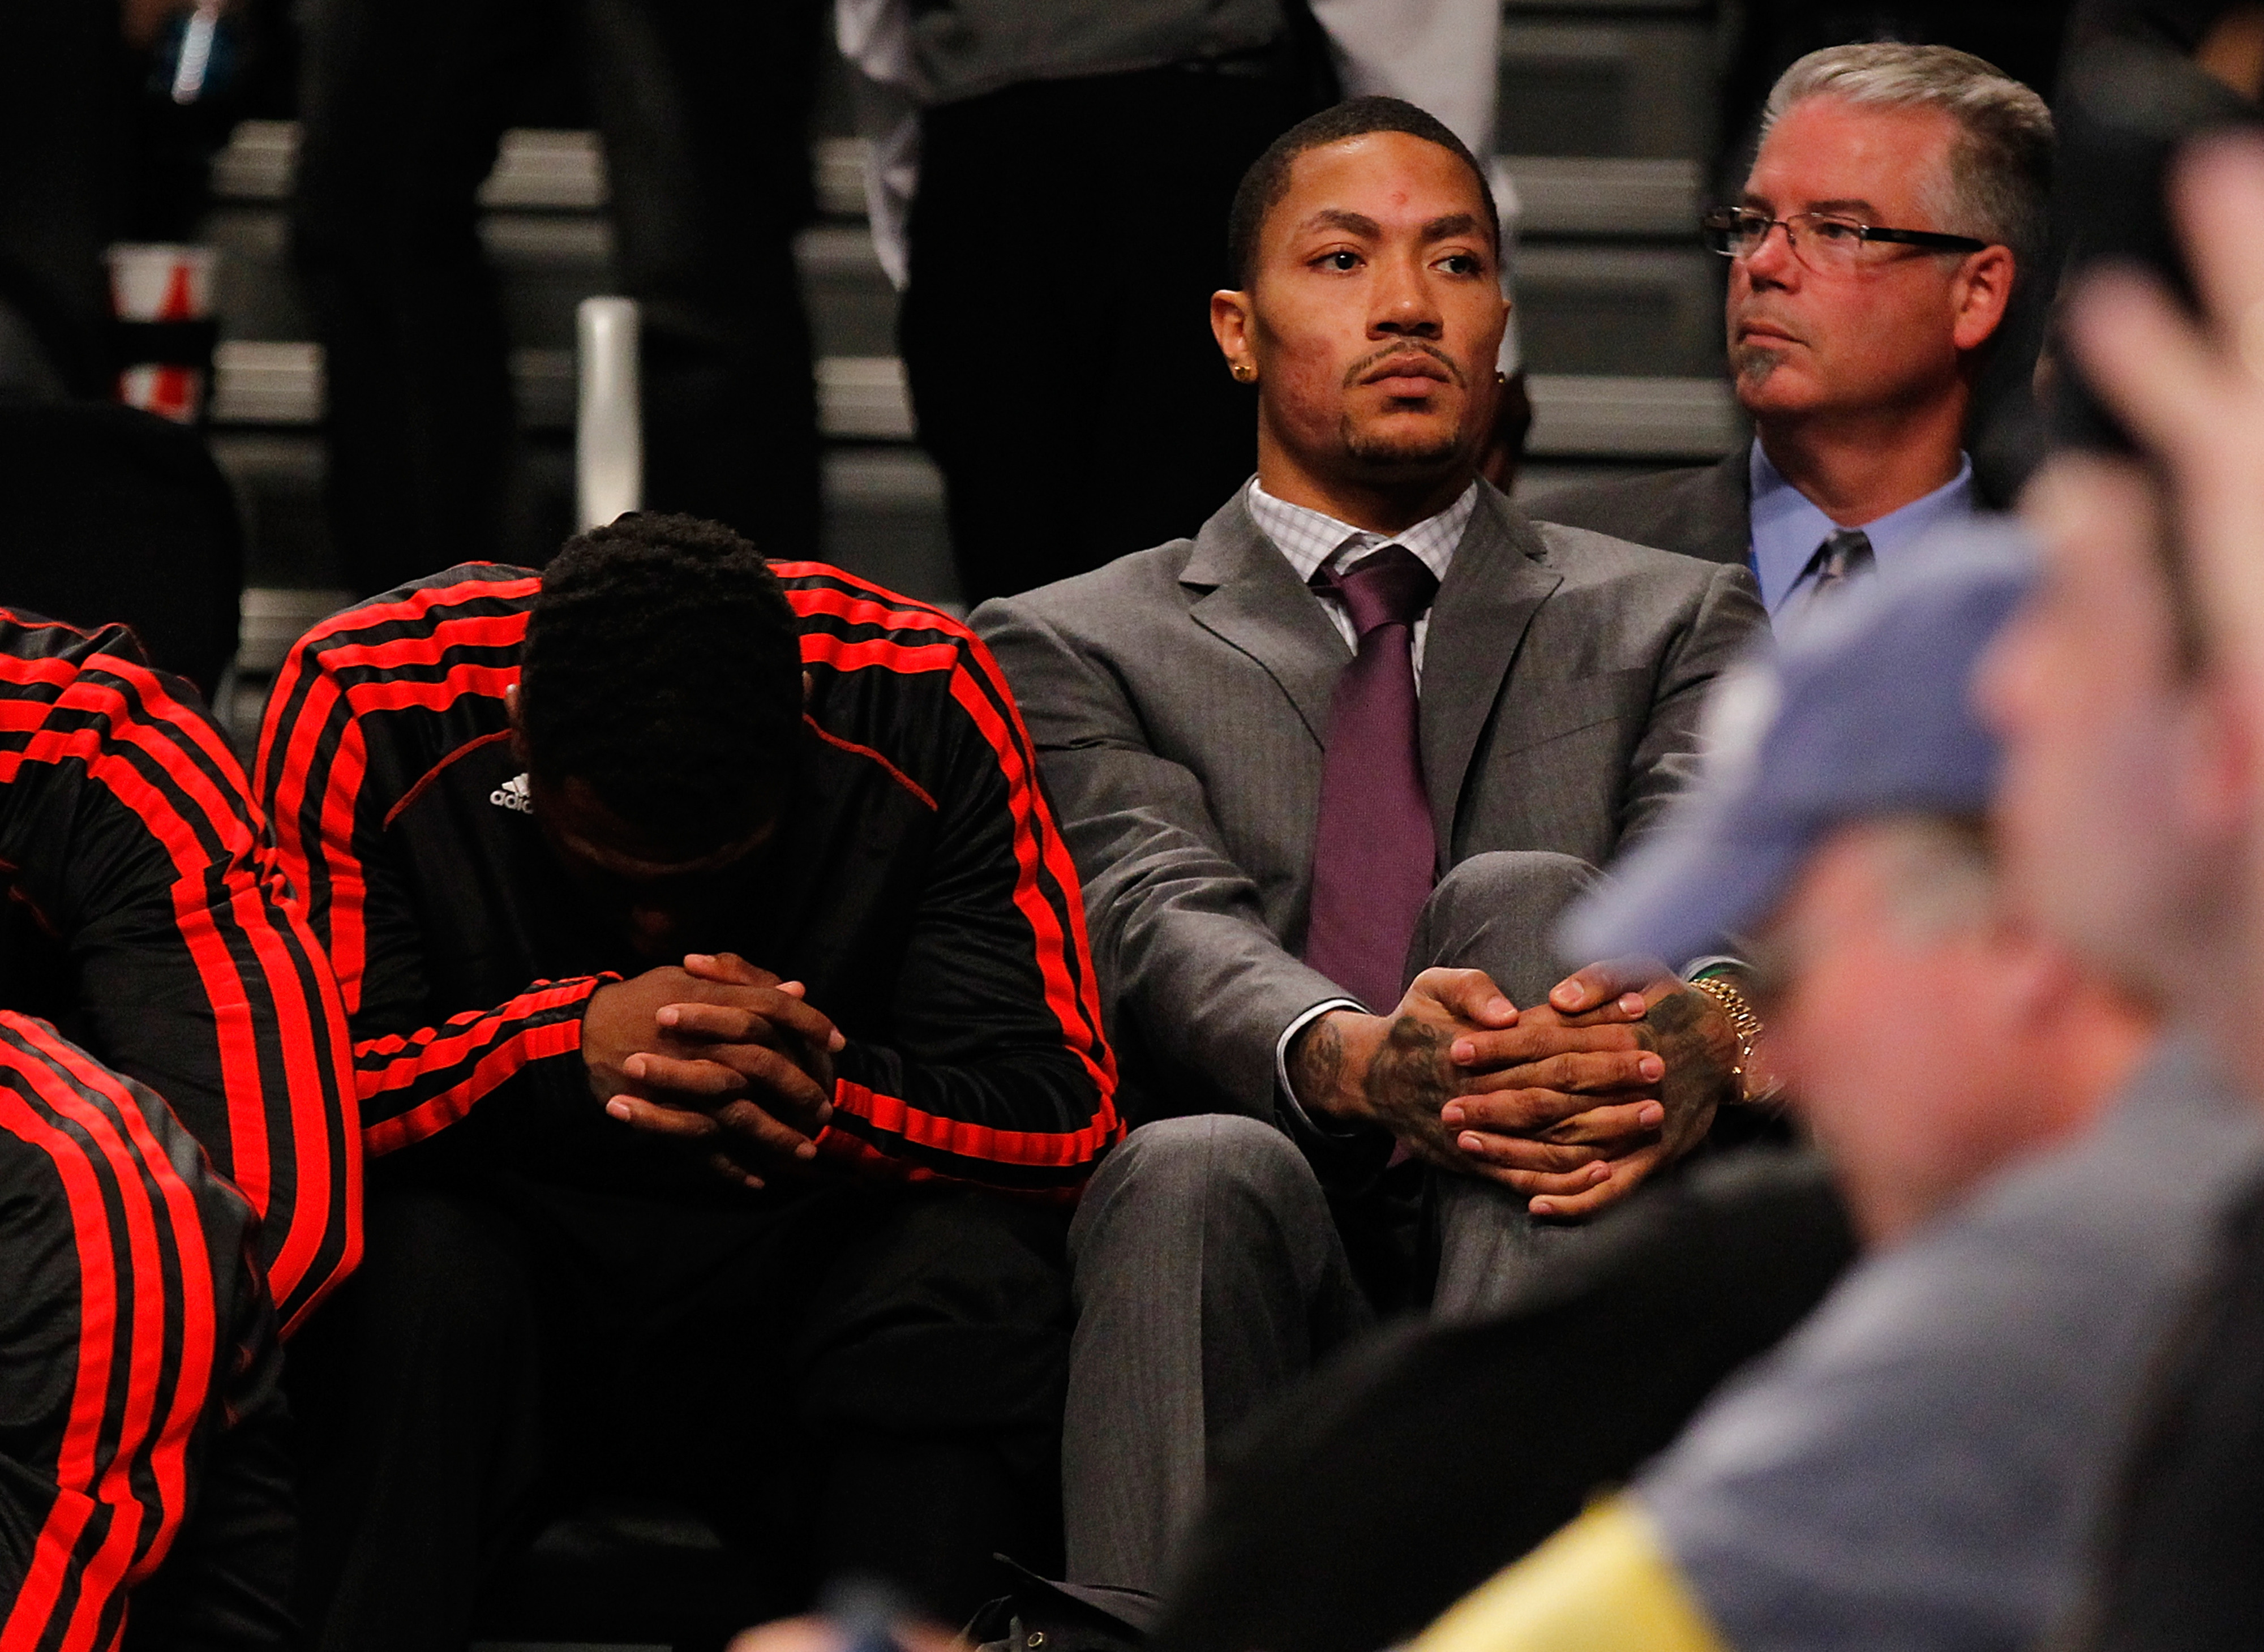 The Derrick Rose drama has reached its breaking point